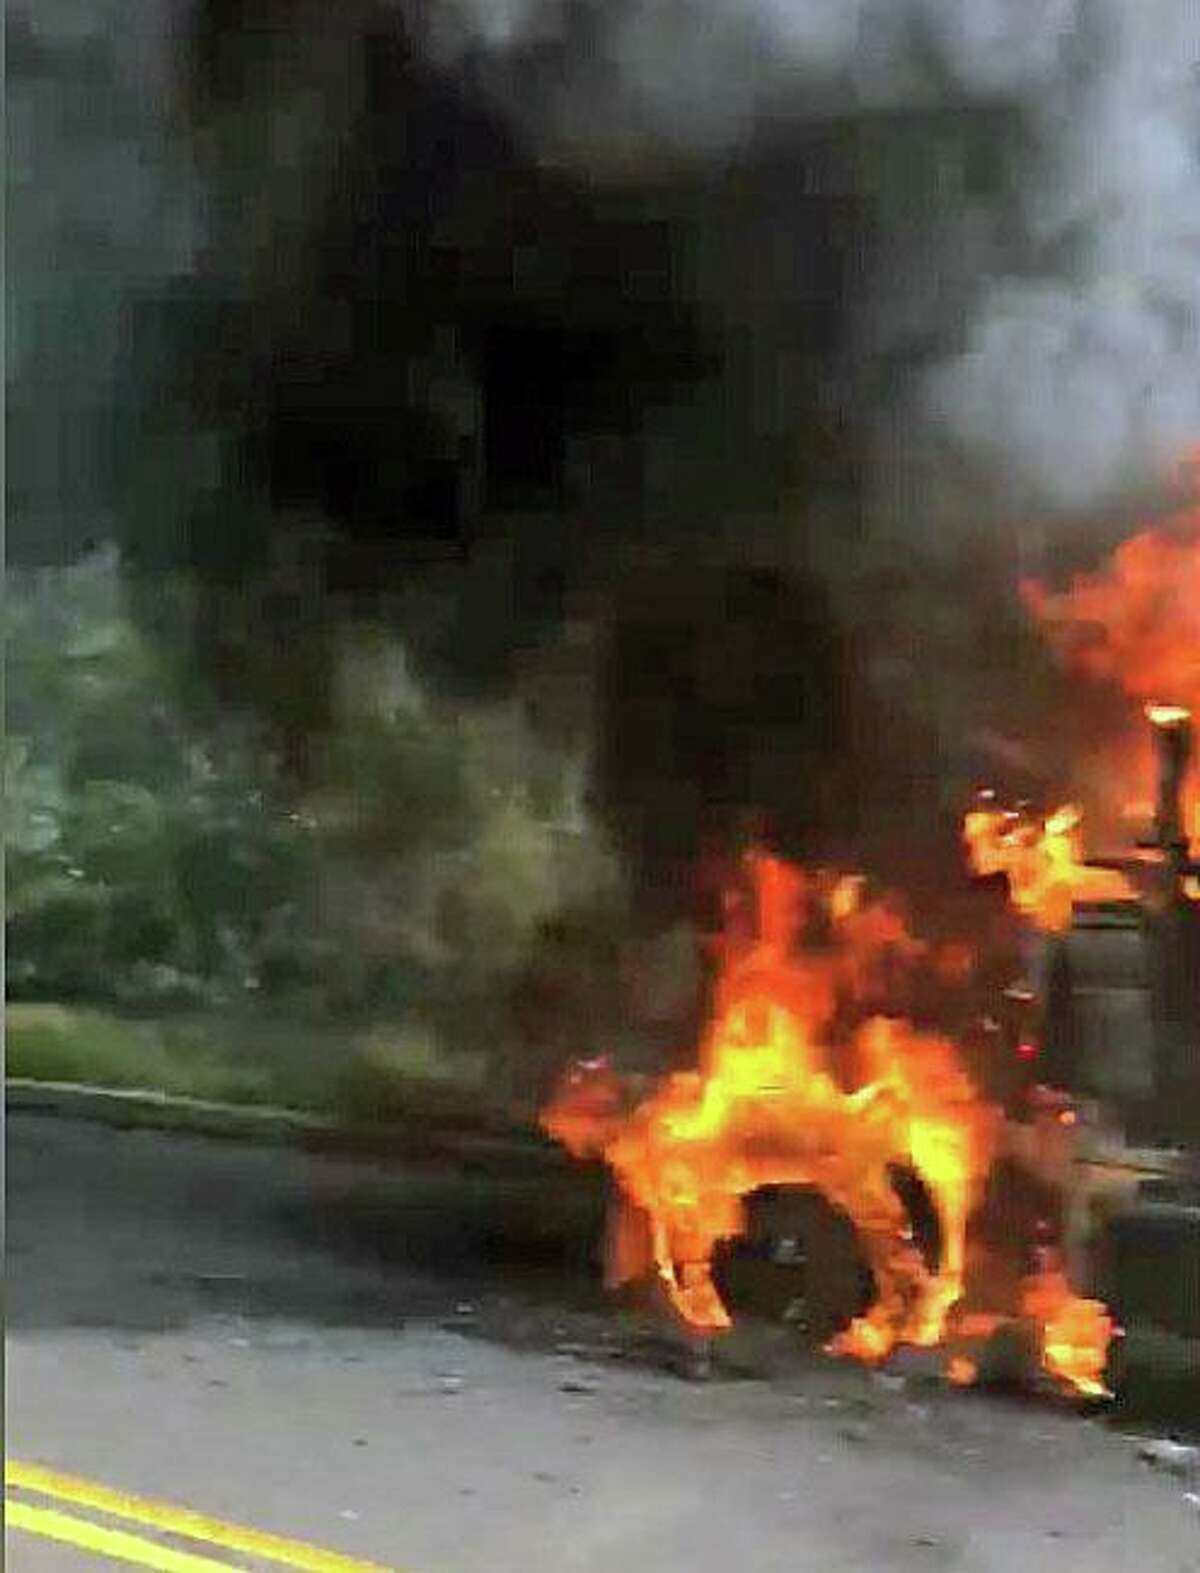 A tractor-trailer fire on Riversville Road in Greenwich, Conn., on Tuesday, Sept. 15, 2020.